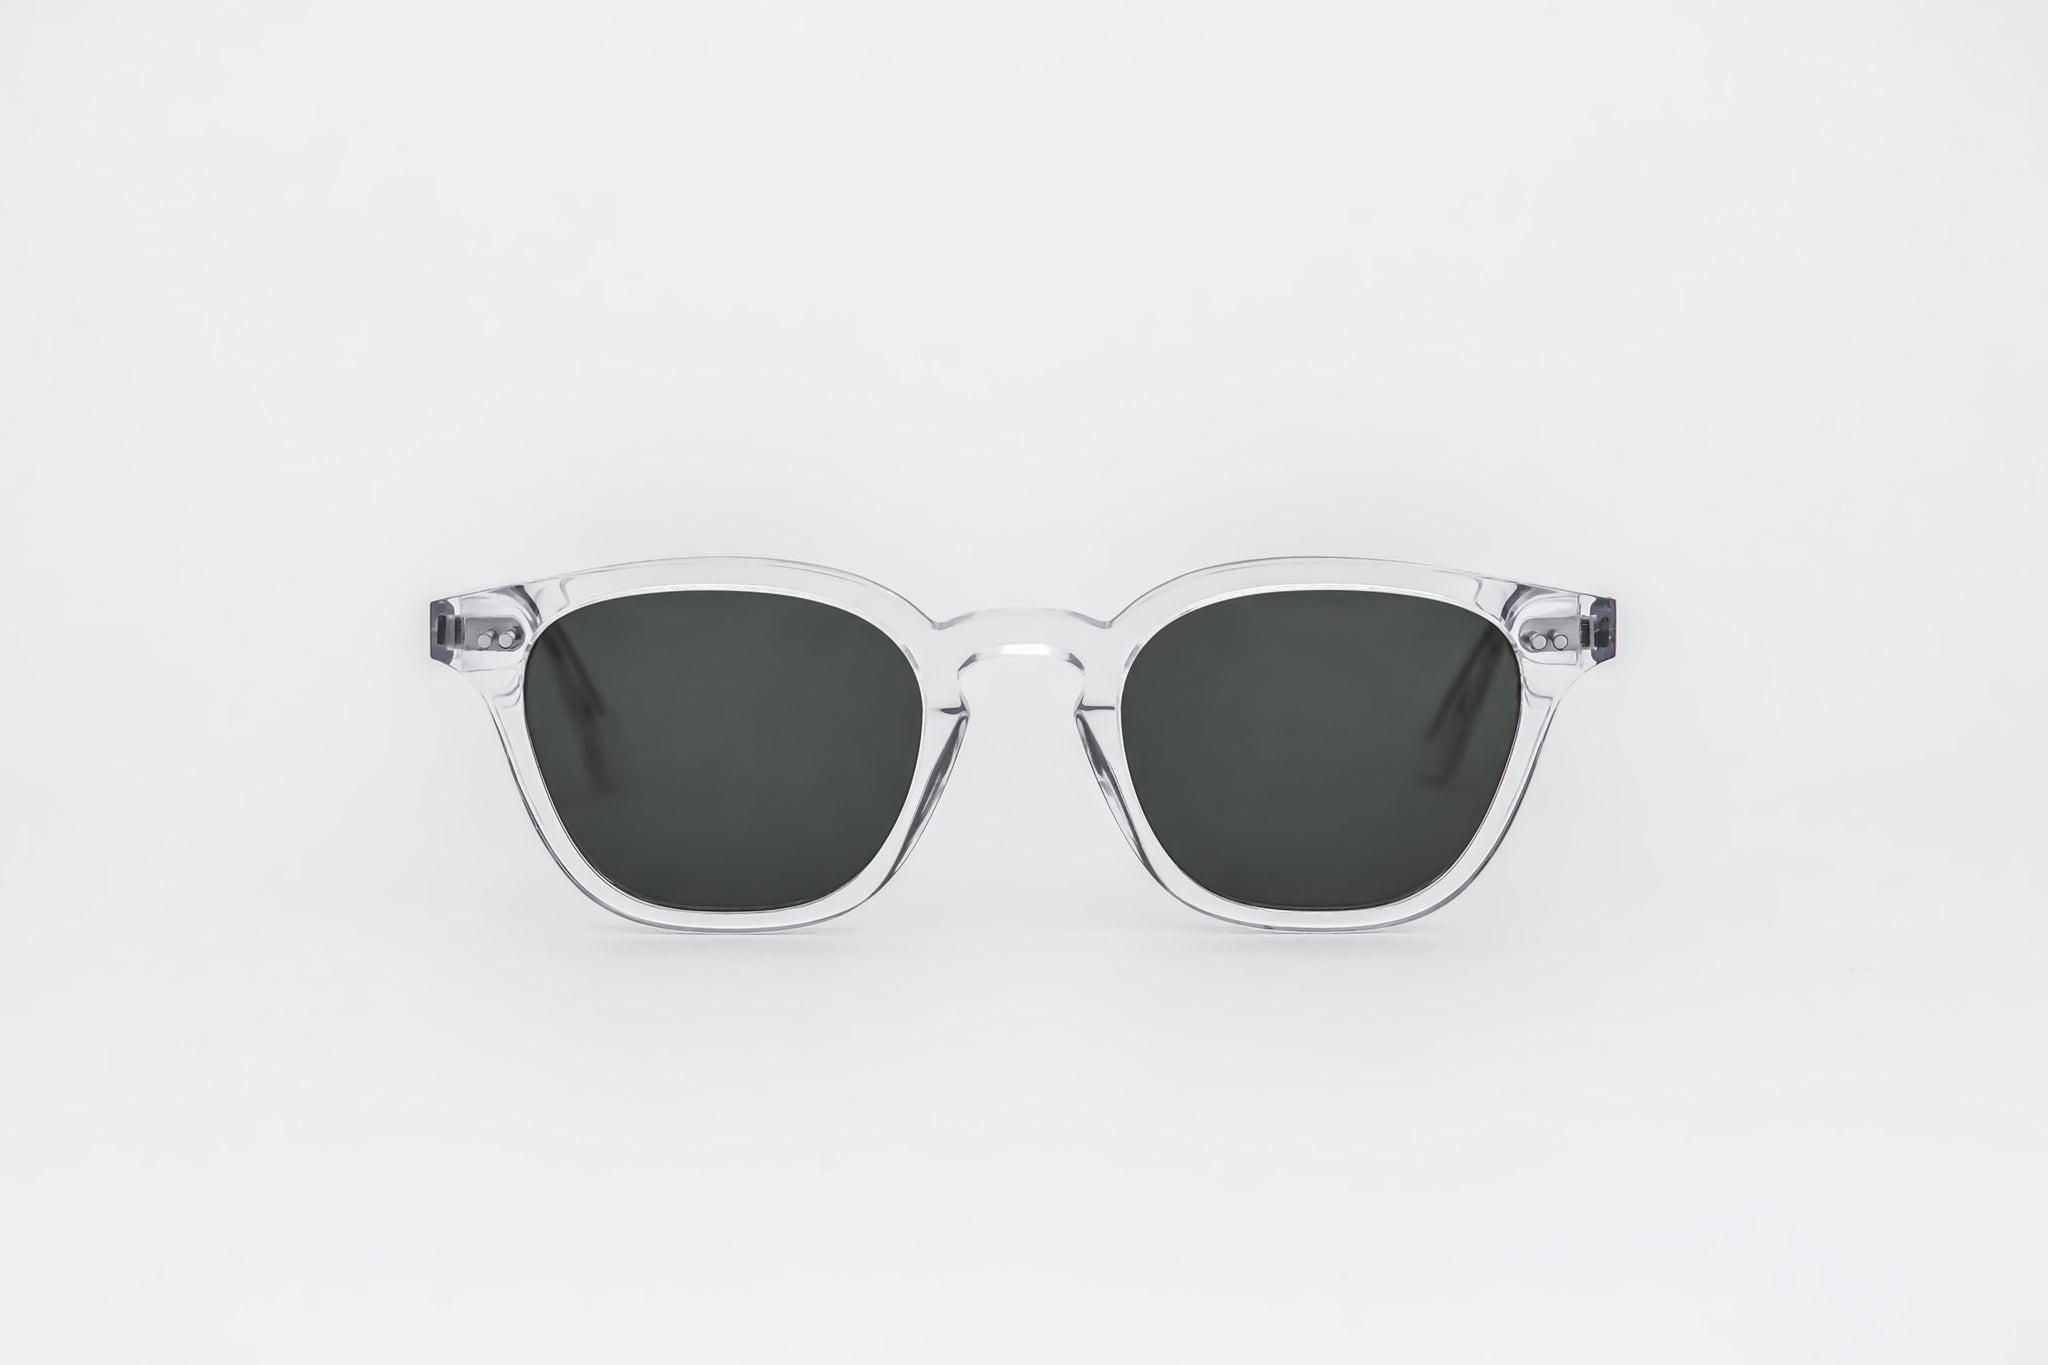 monokel eyewear sunglasses river crystal / green solid lens